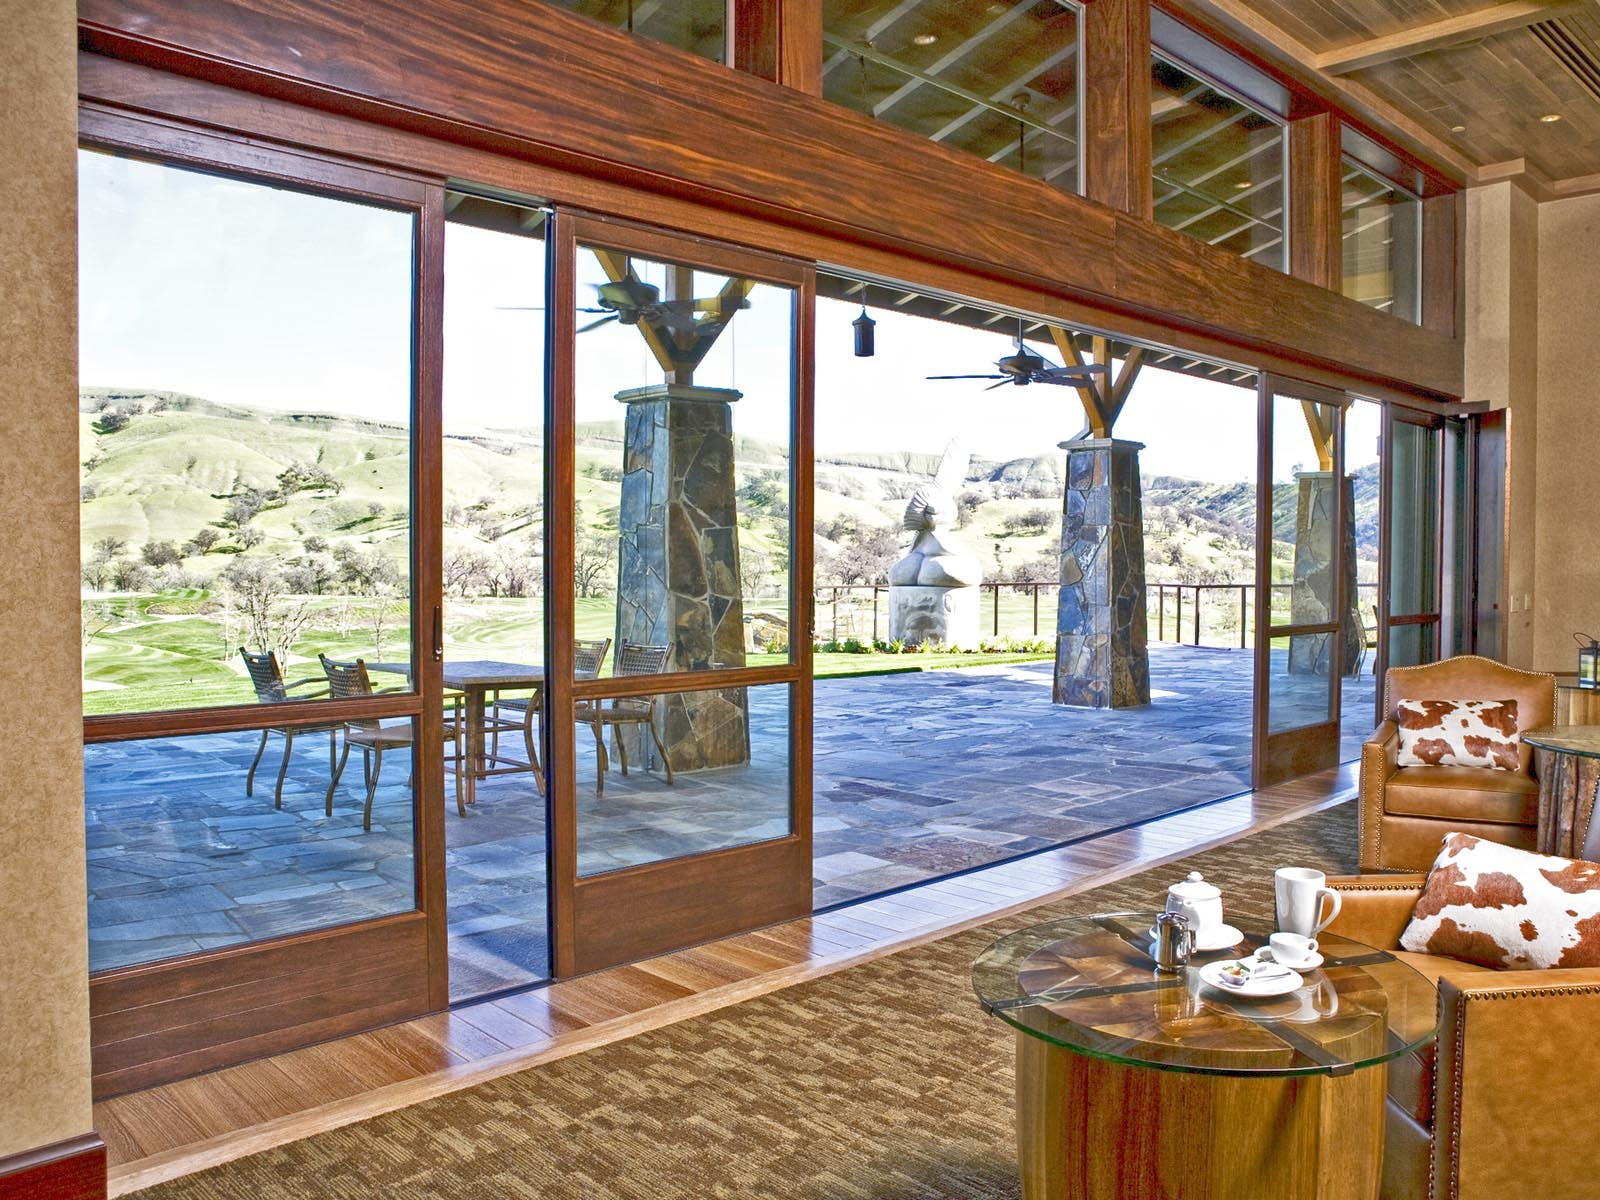 Wood Framed Sliding Glass Walls-Highlights